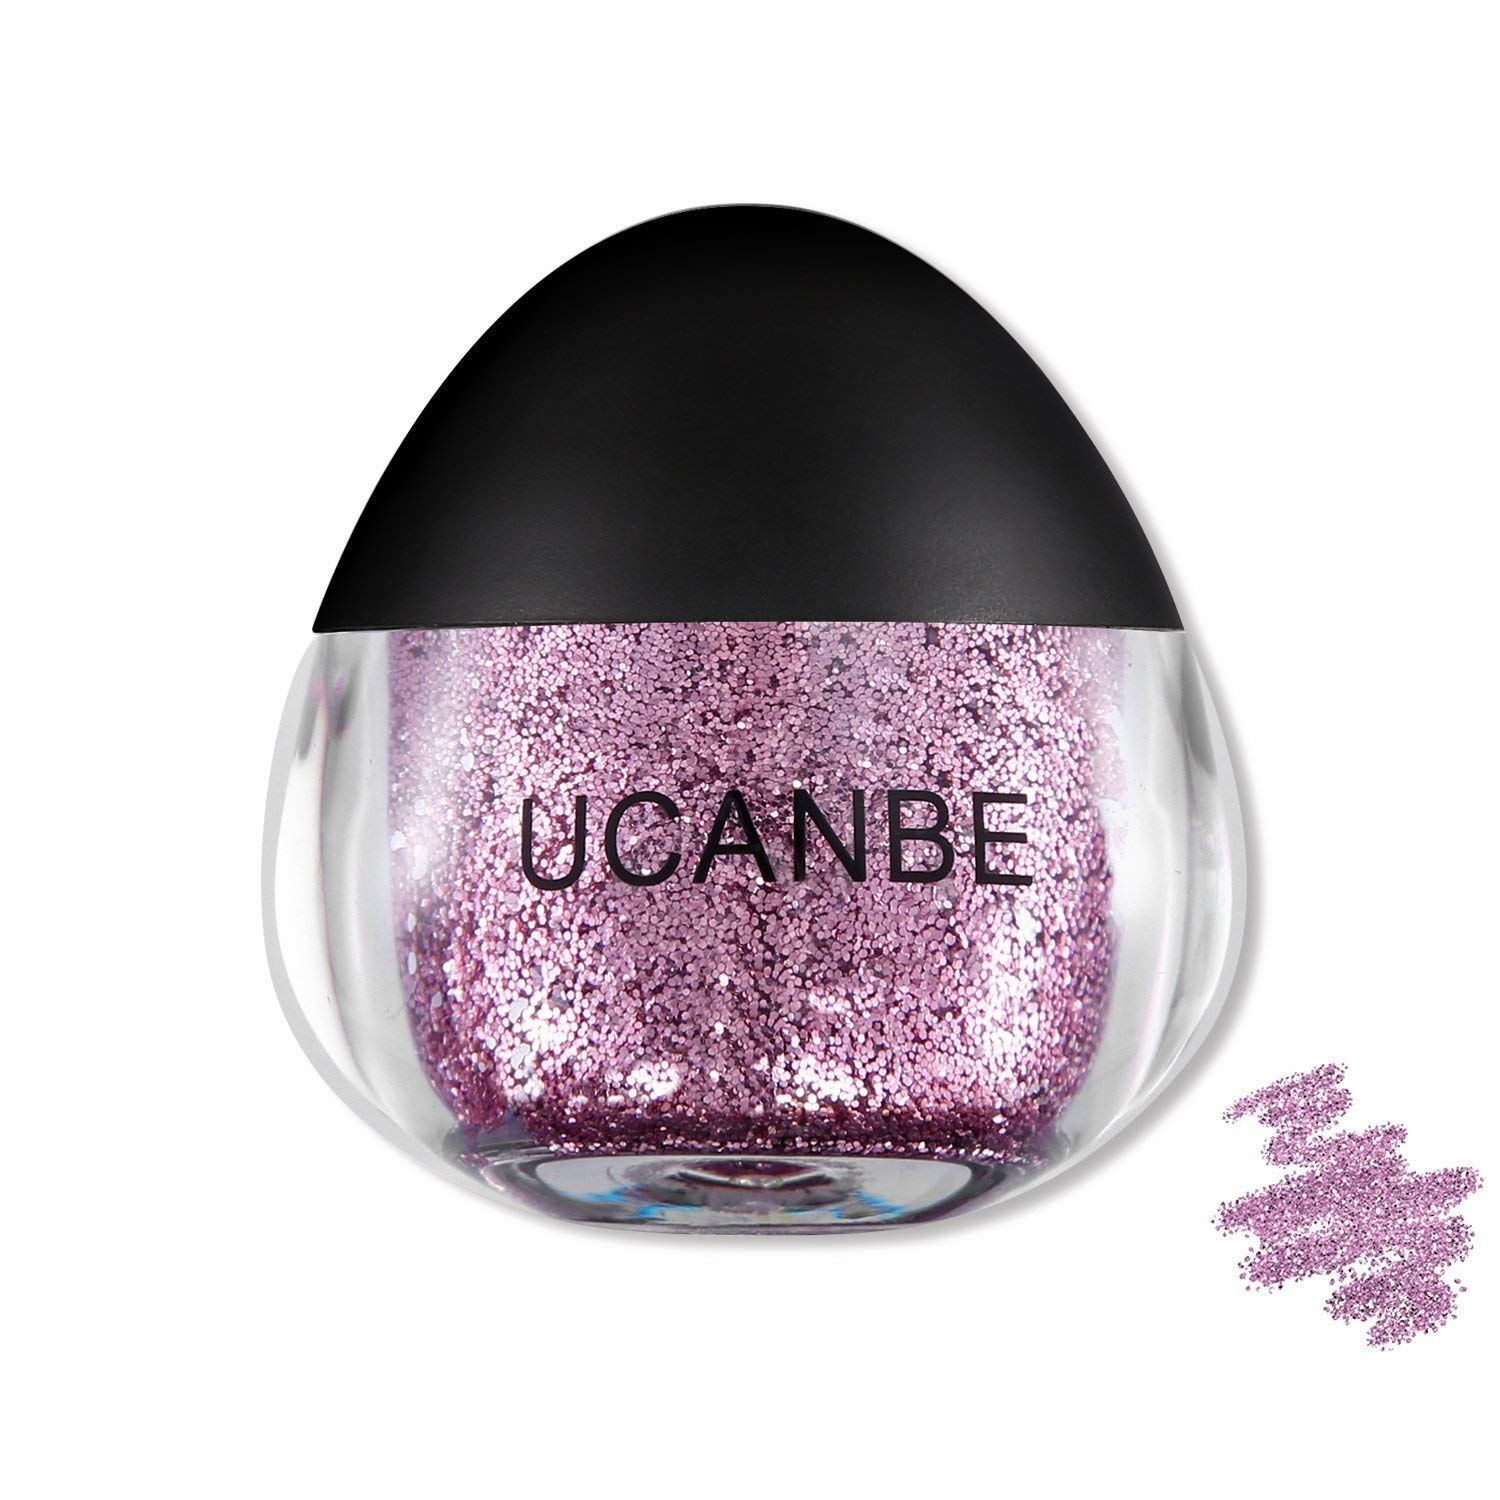 UCANBE Glitter Gel for Face, Body and Hair, Cruelty-Free, 0.63 fl. Oz (rubine)